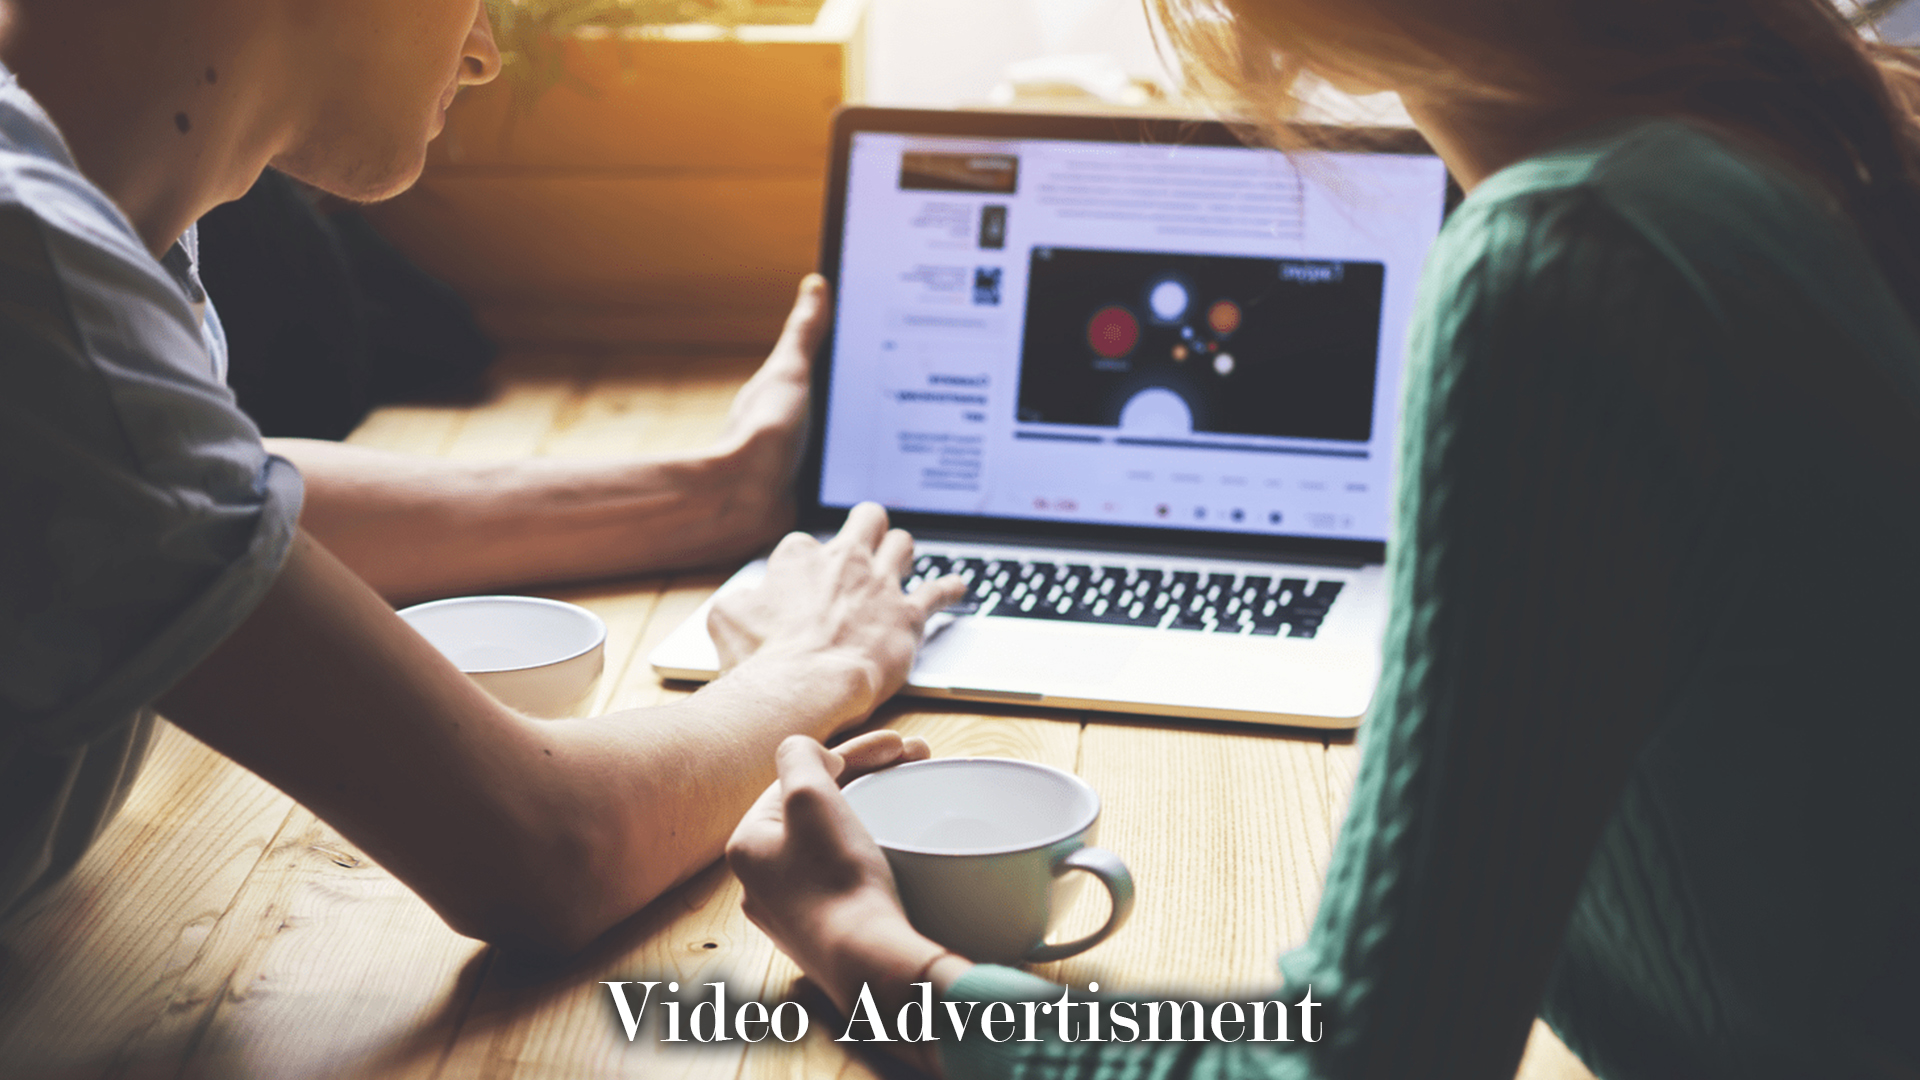 video advertisement